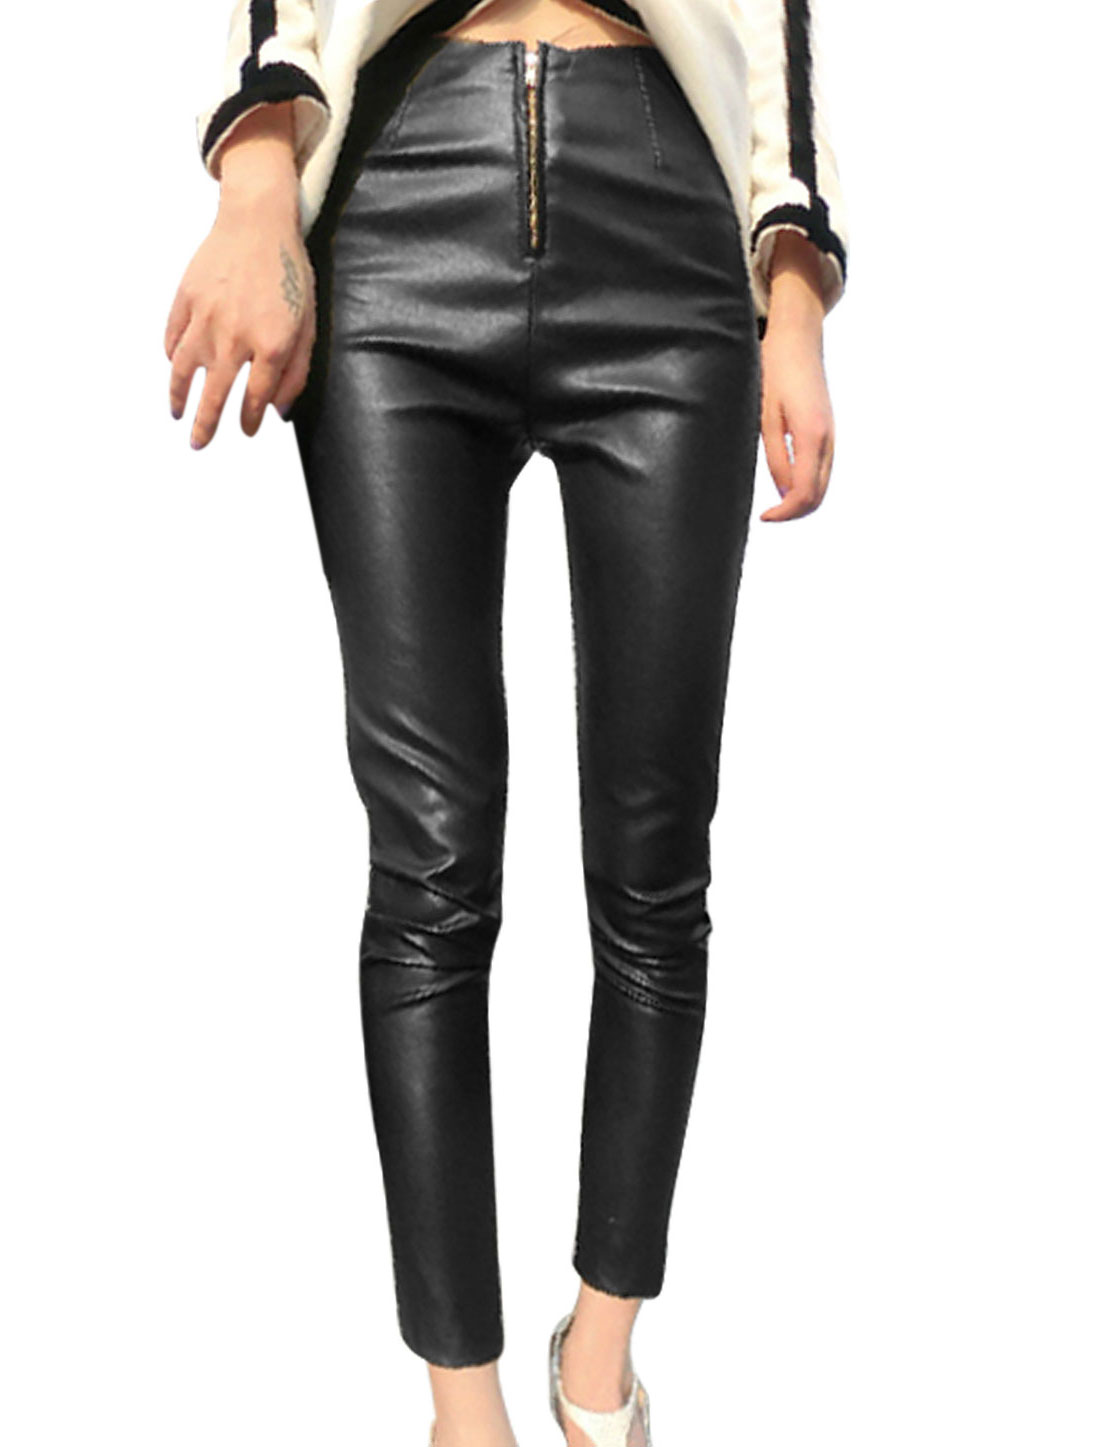 Korean Style Zip Fly Slim Imitation Leather Cropped Pants for Lady